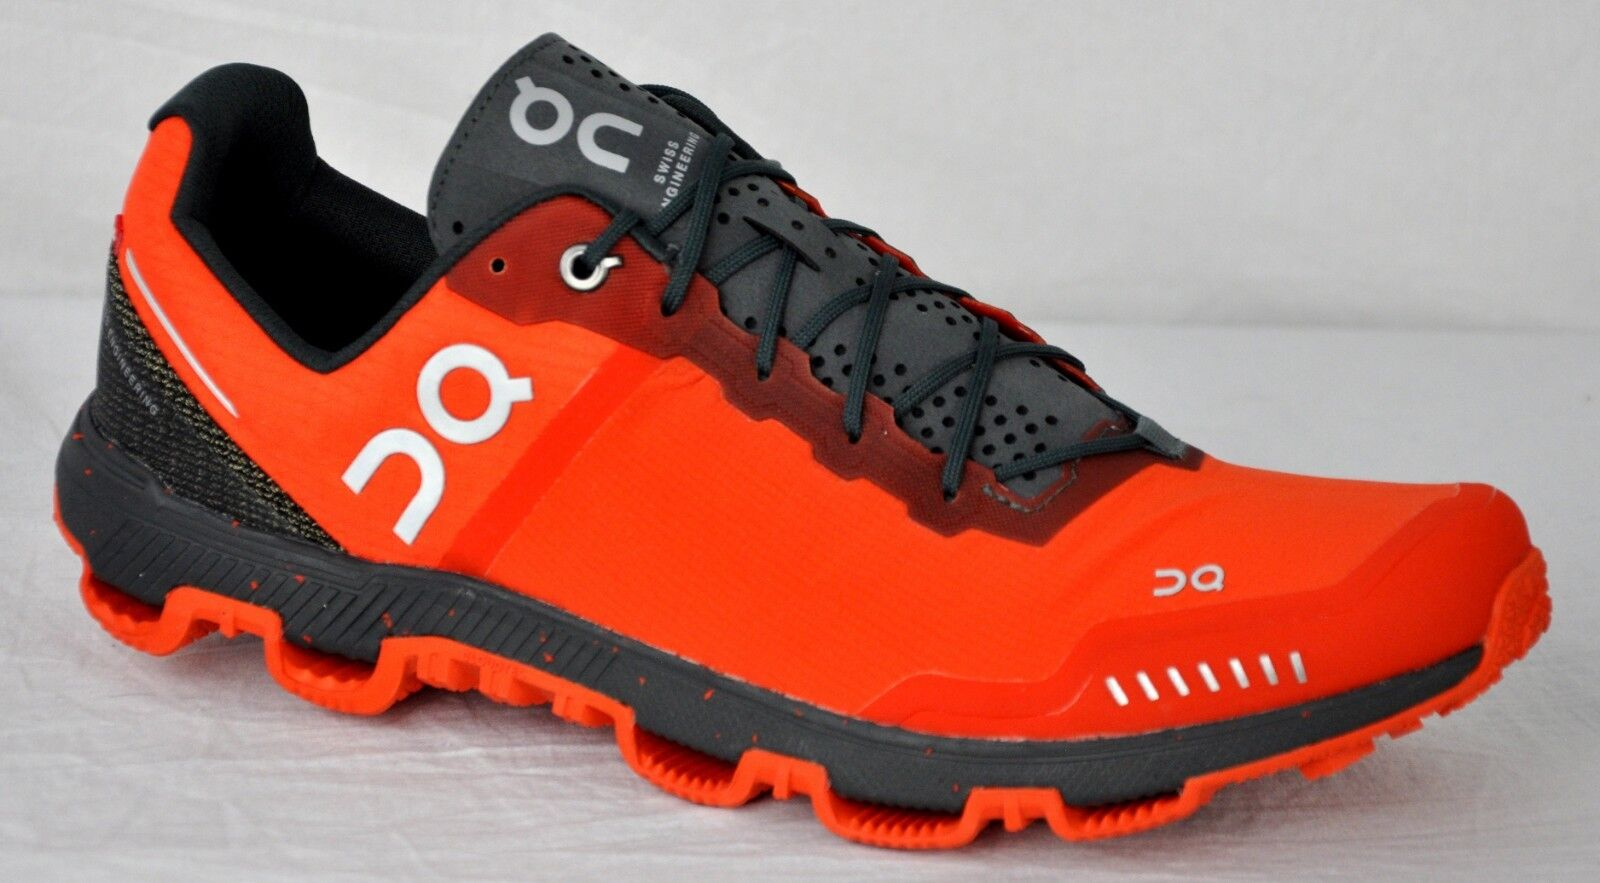 ON Men's Cloudventure Peak Trail Running Gym shoes 14.1464 Flame Shadow Size 8.5